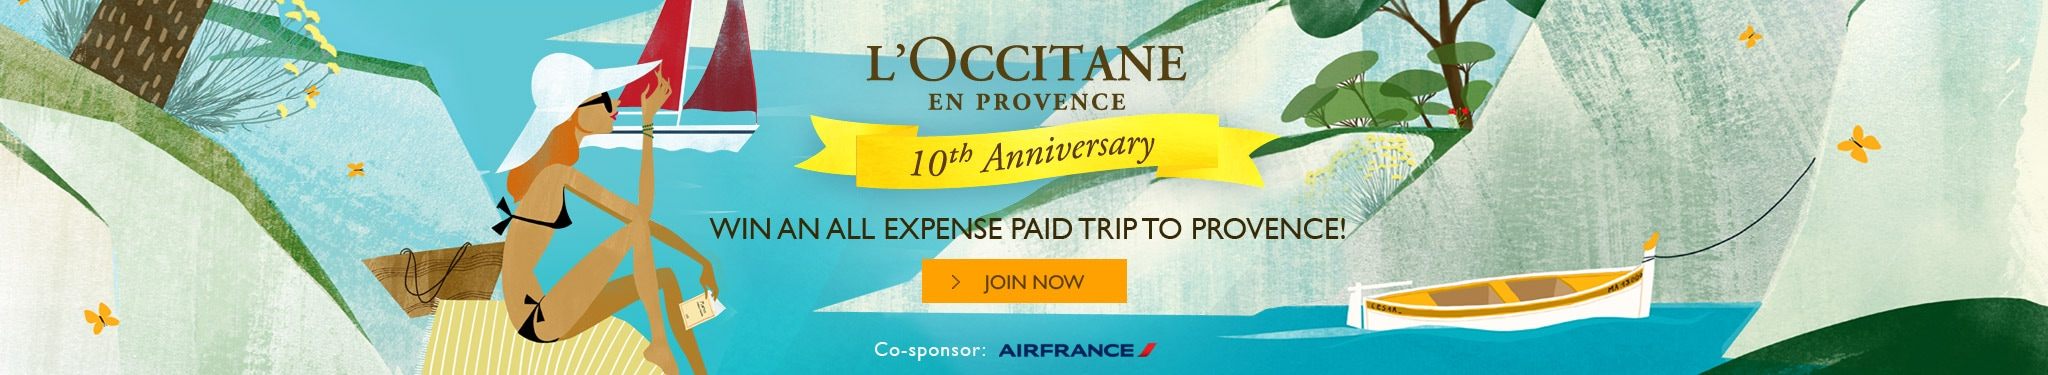 Celebrating 10 years Anniversary - stand a chance to win a trip to Provence!